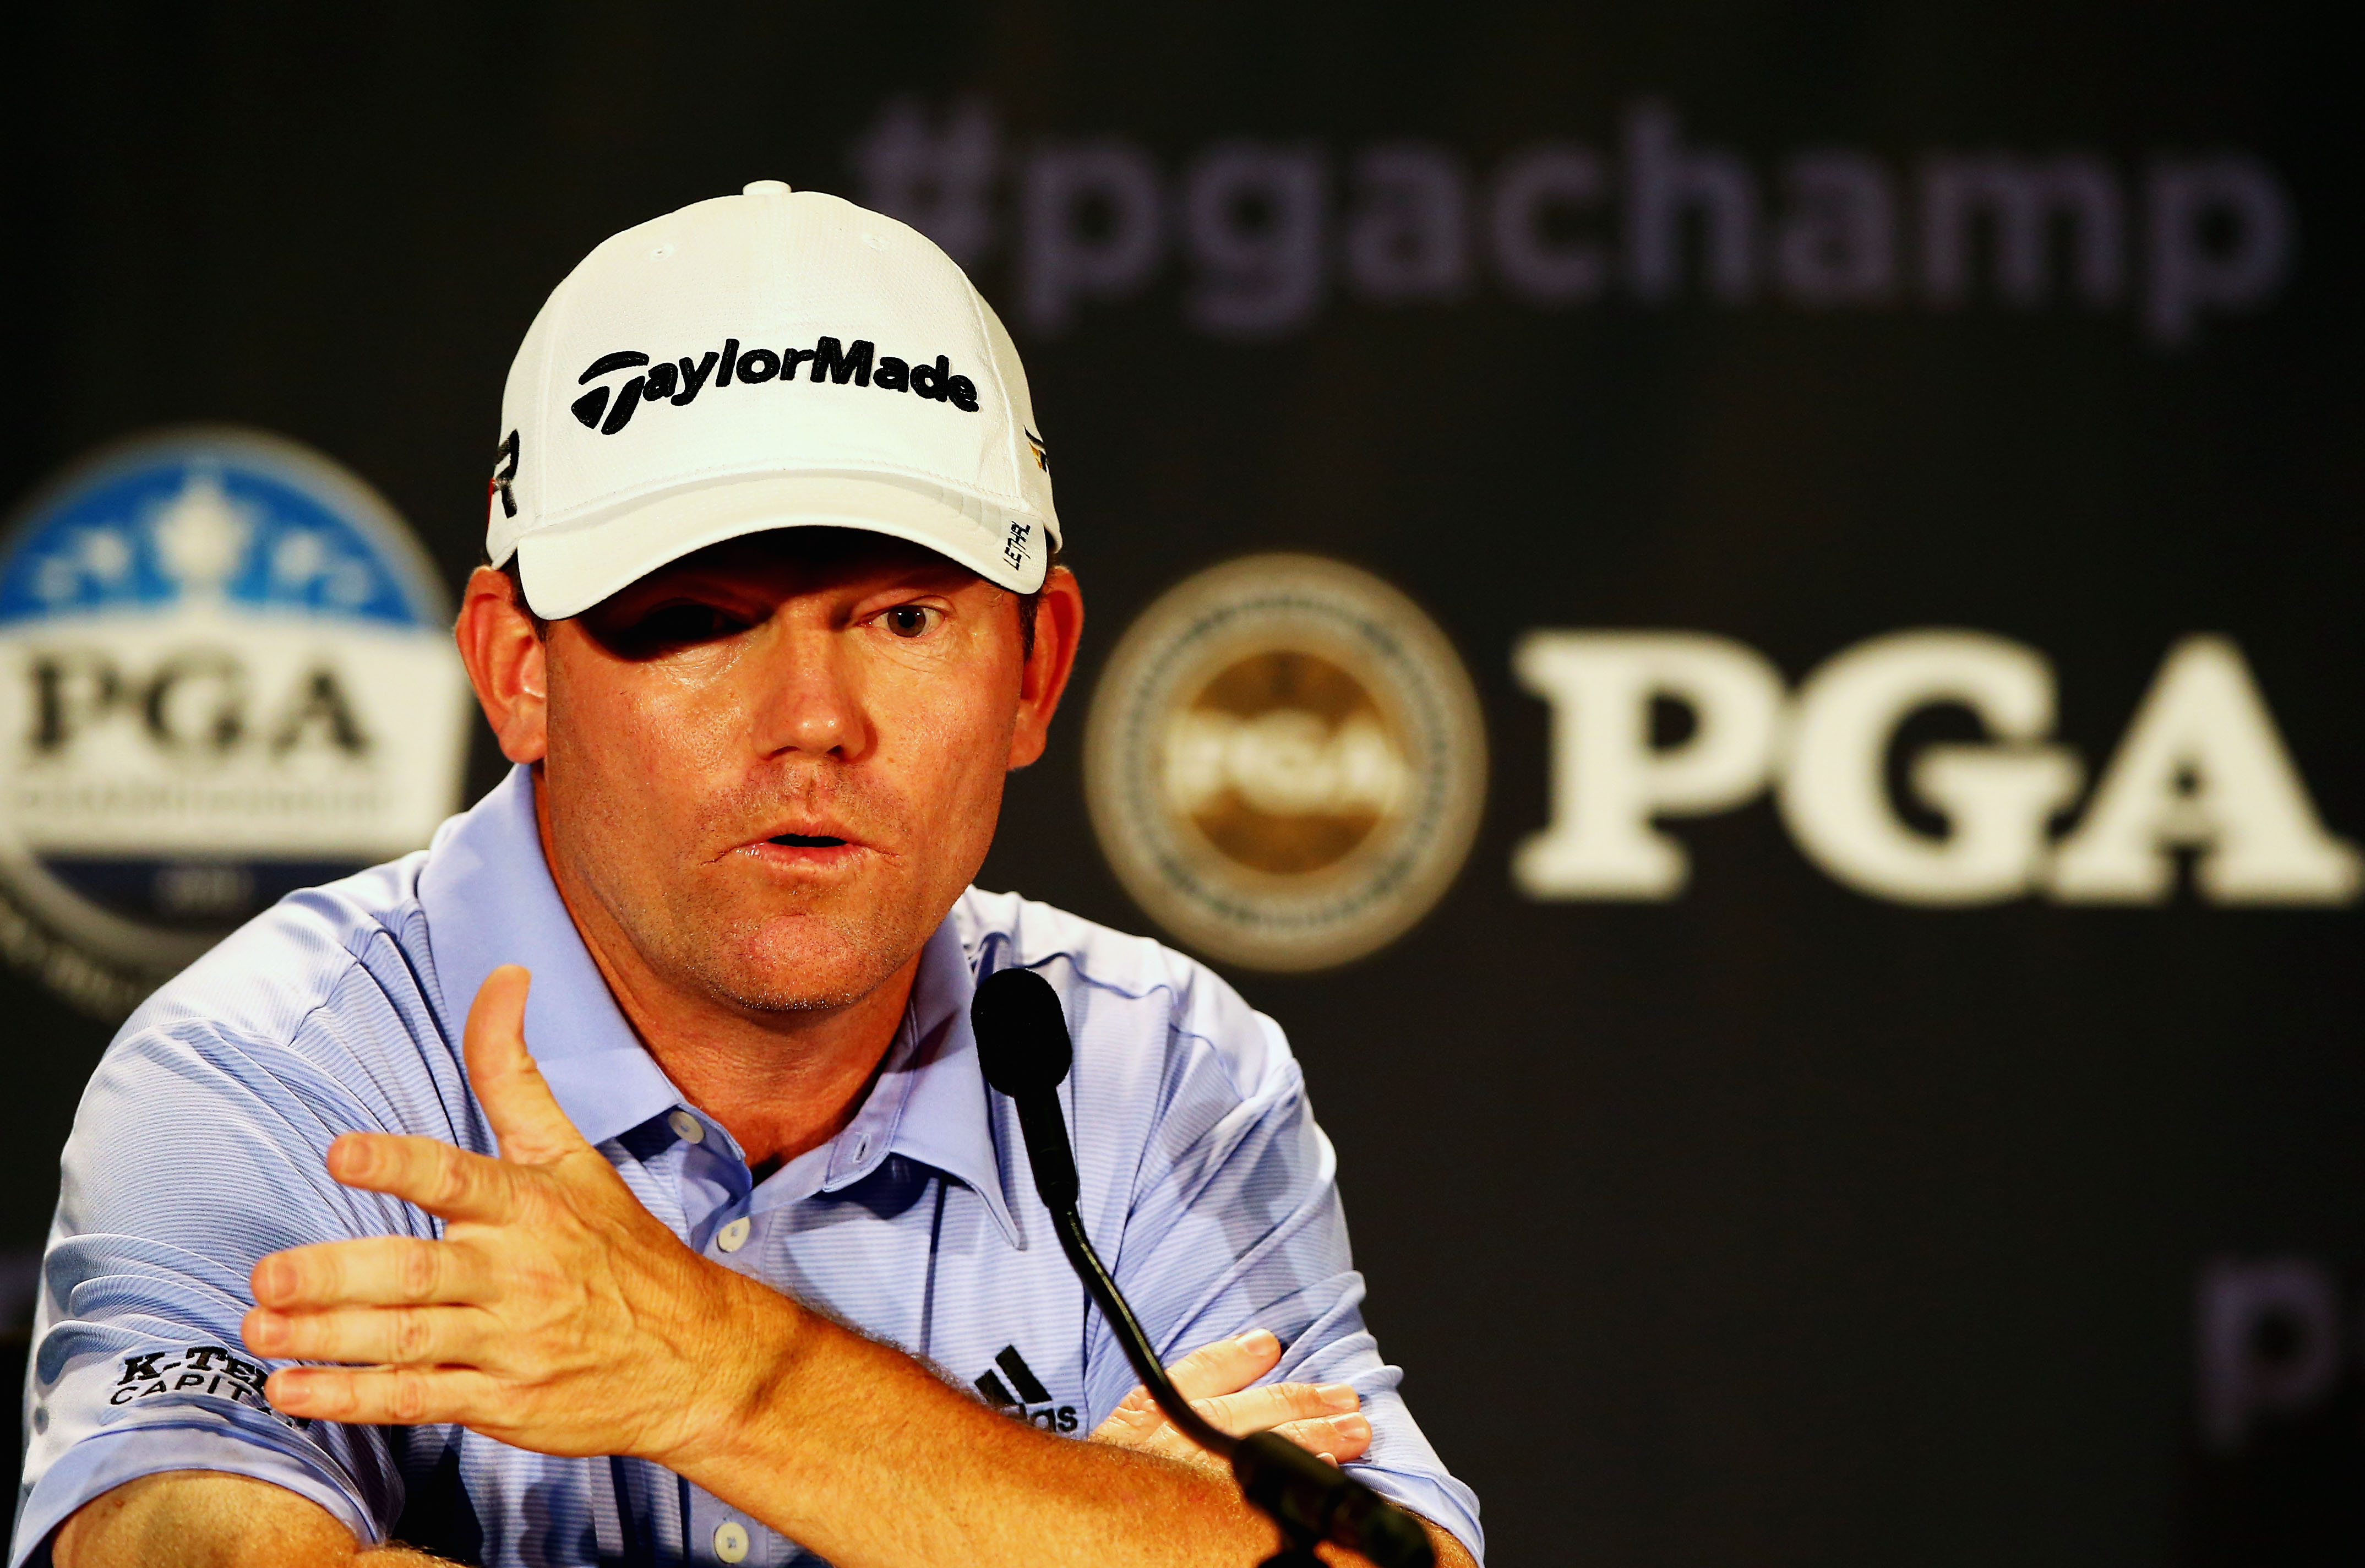 ROCHESTER, NY - AUGUST 06: Shaun Micheel of the United States is interviewed during a press conference prior to the start of the 95th PGA Championship at Oak Hill Country Club on August 6, 2013 in Rochester, New York. (Photo by Streeter Lecka/Getty Images)